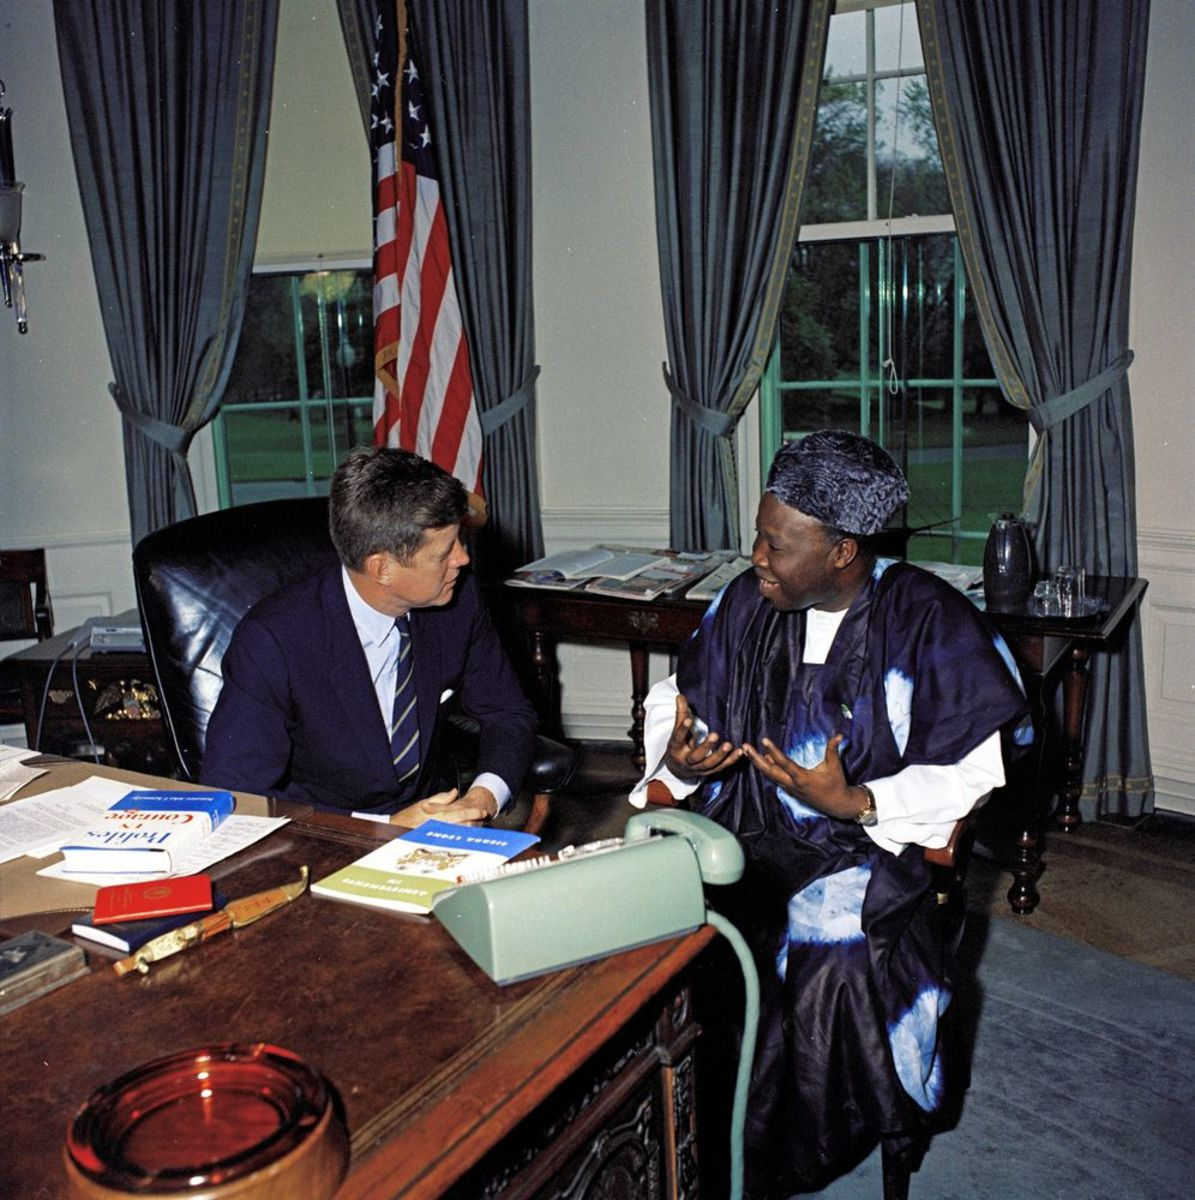 President John F. Kennedy meets with Dr. William H. Fitzjohn, Charge d'Affairs of Sierra Leone, in the Oval Office on April 27, 1961.